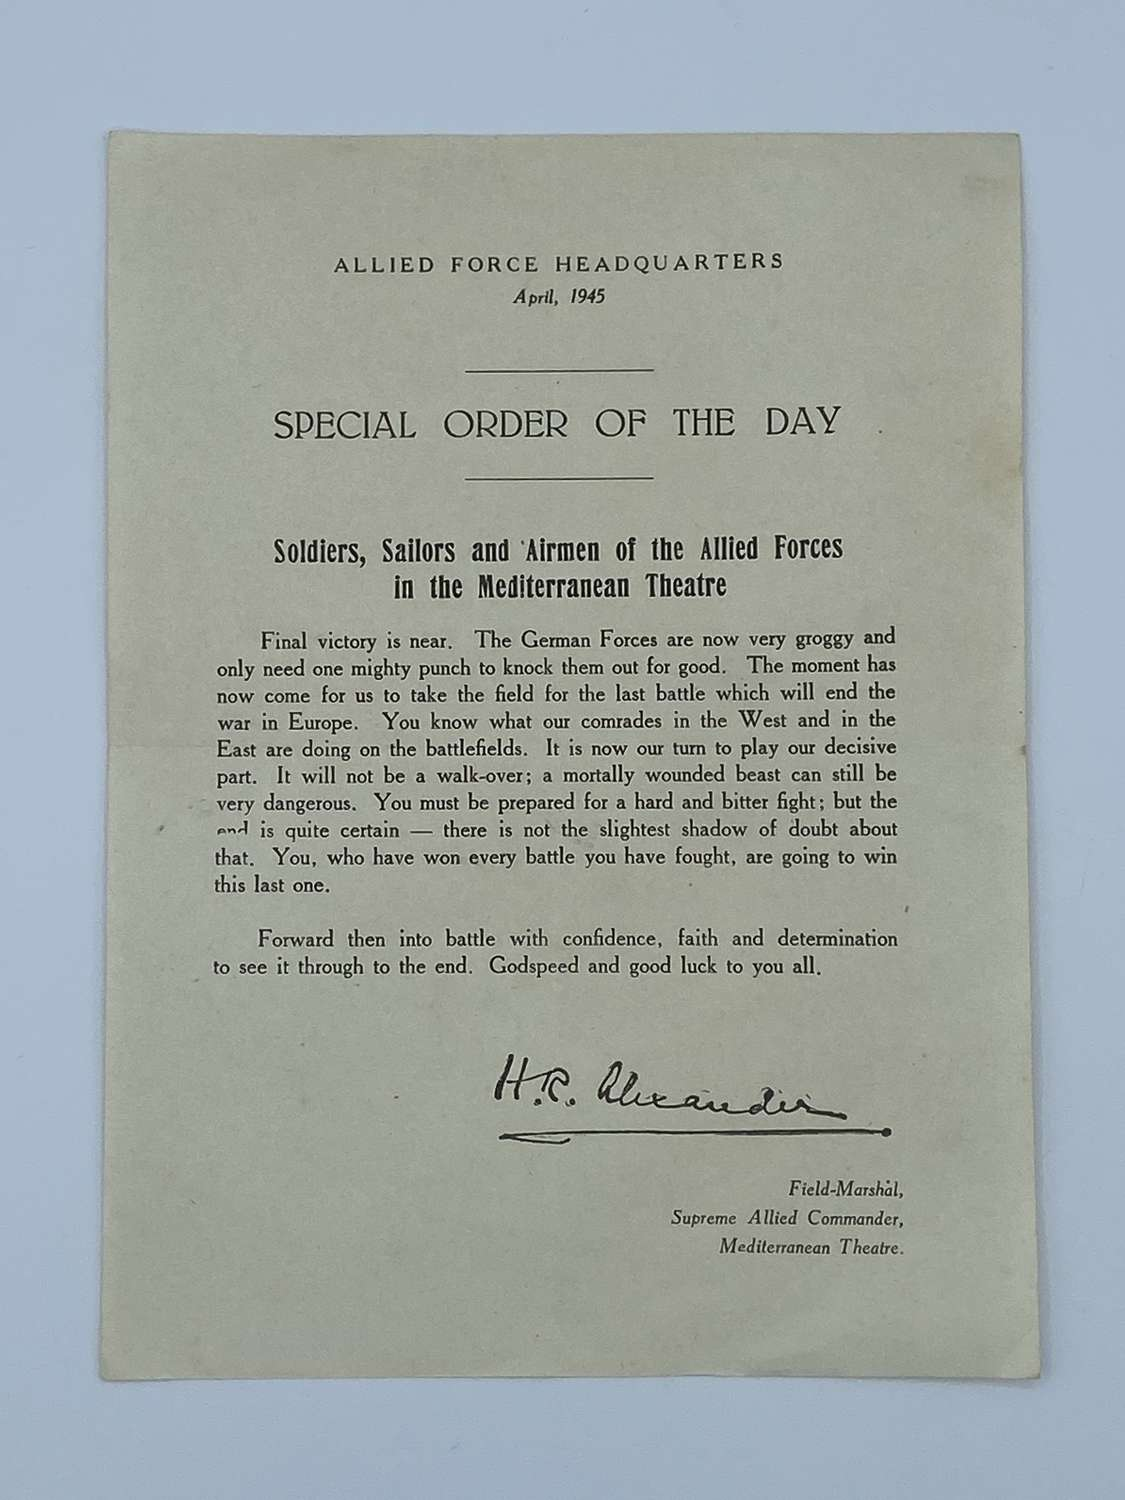 WW2 April 1945 Allied Force Headquarters Special Orders Of The Day